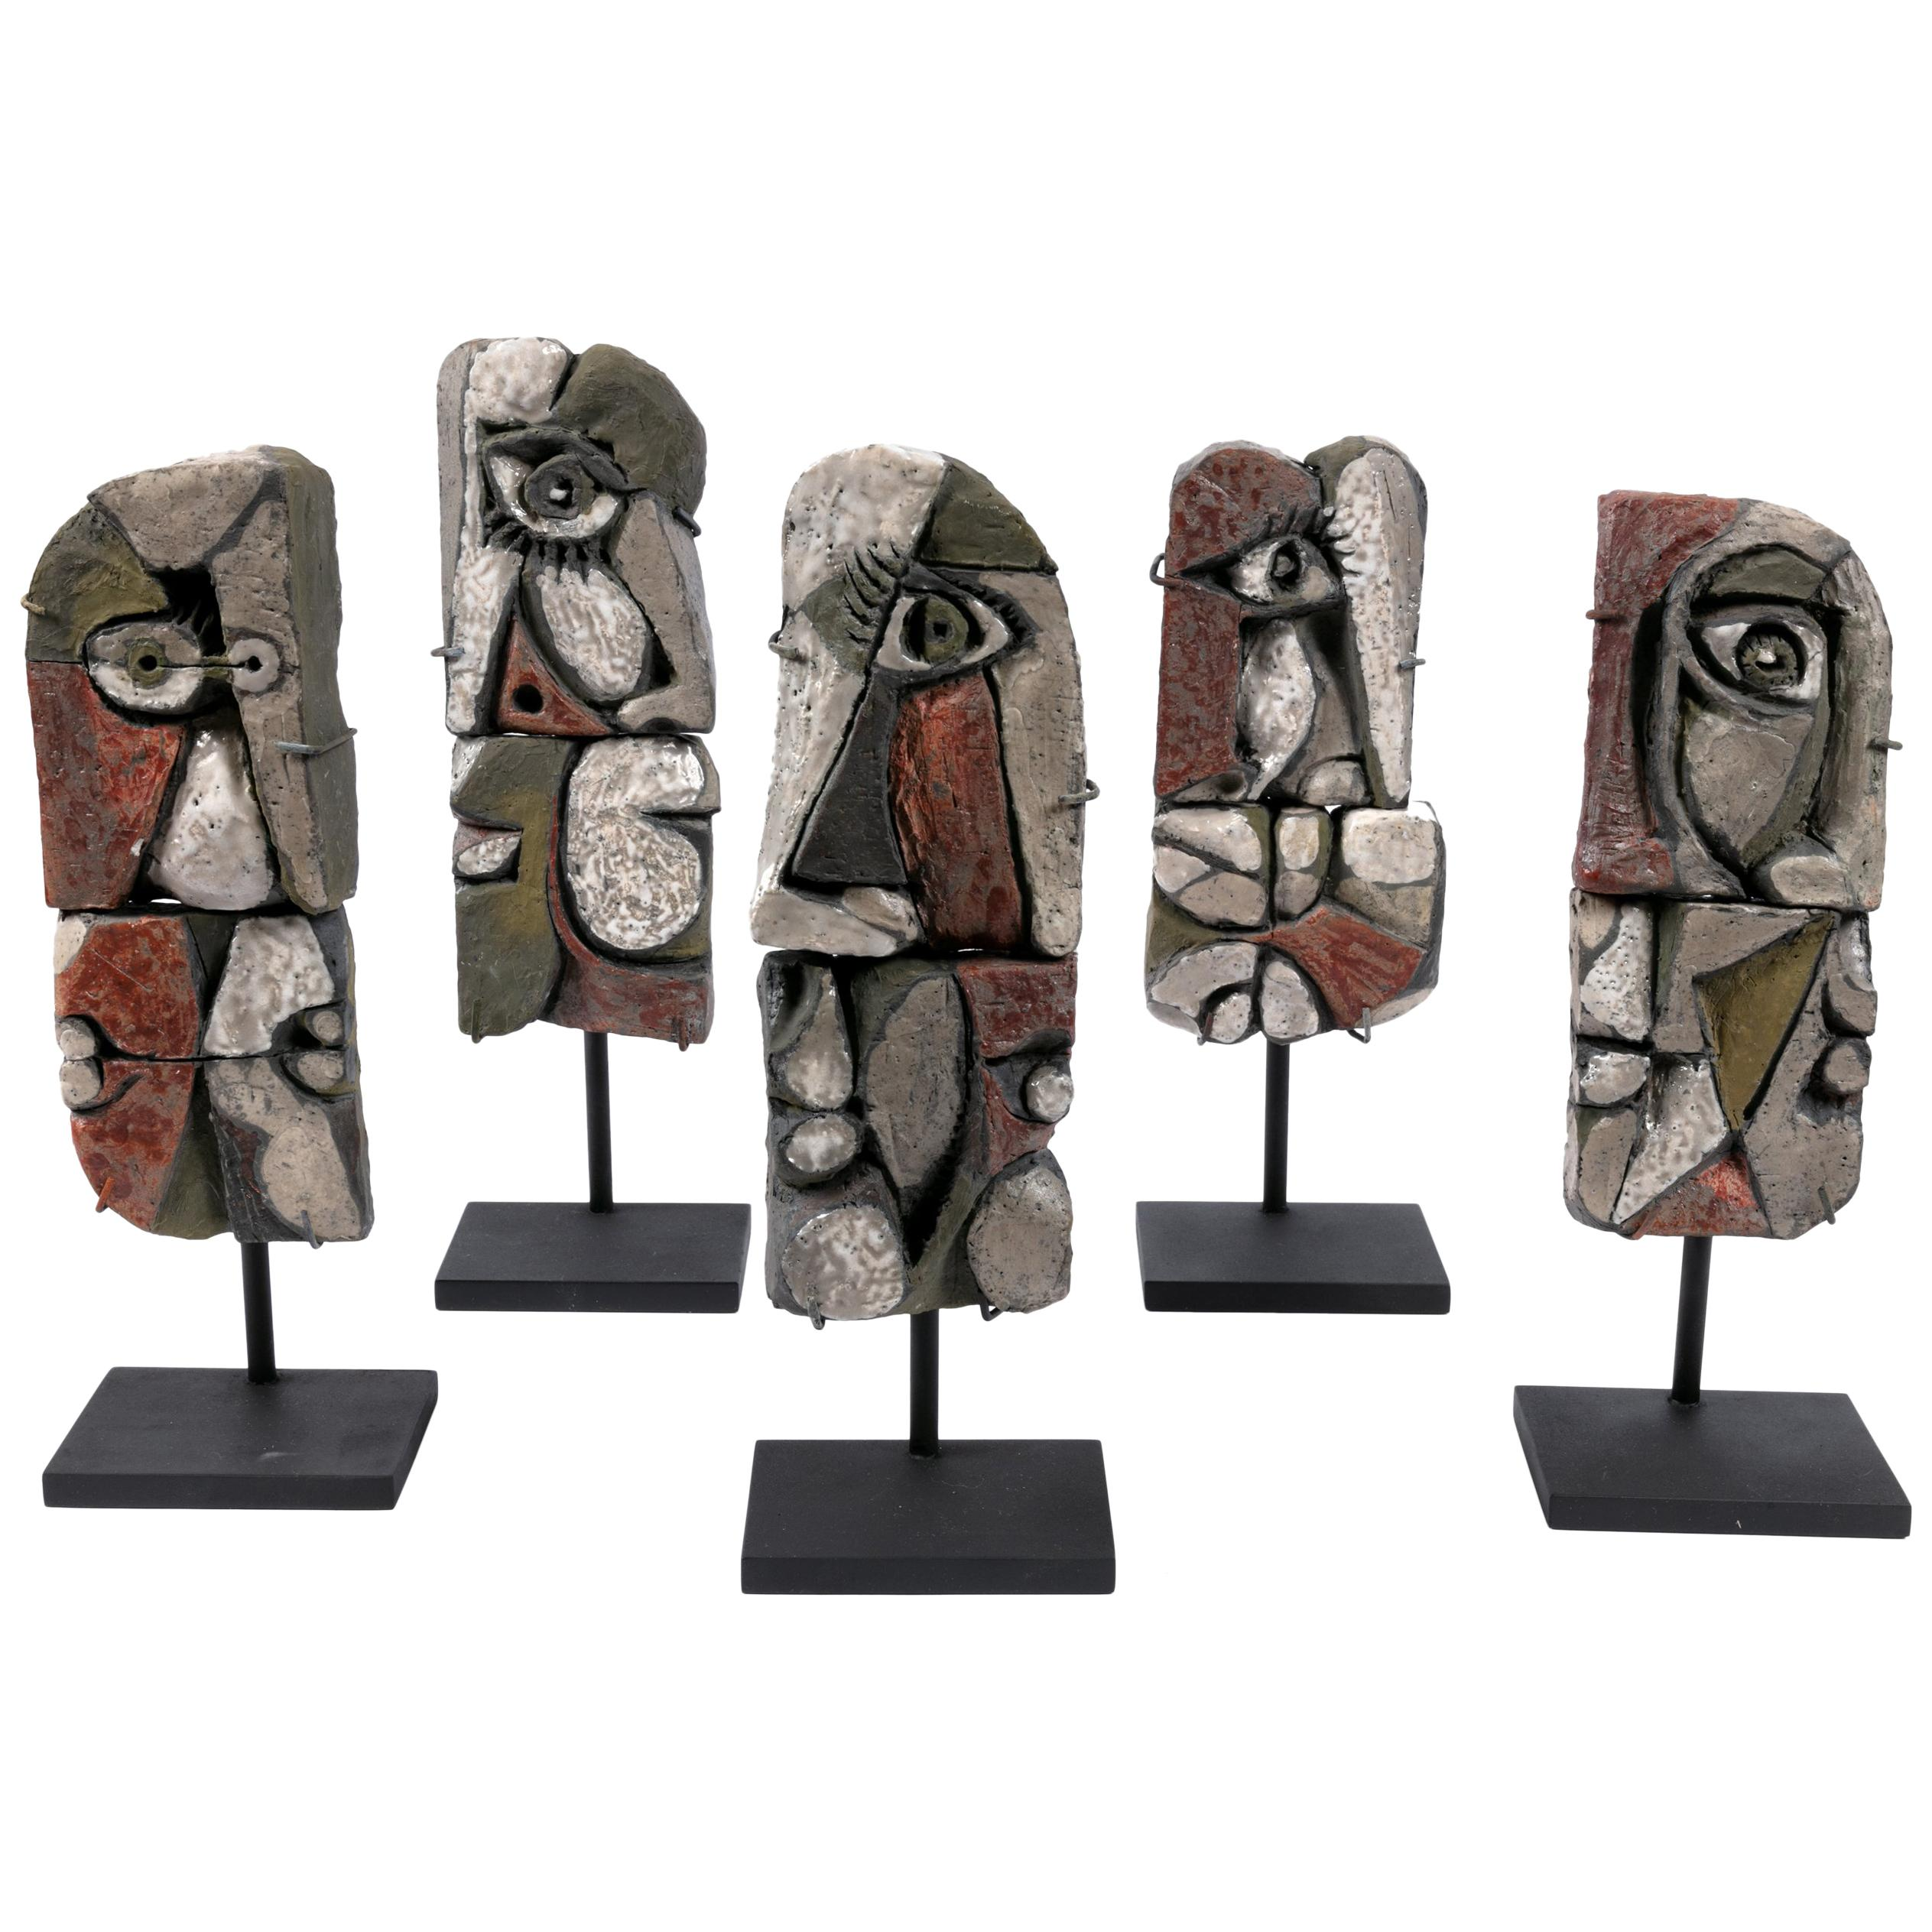 Abstract Ceramic Sculptures, France 1990s